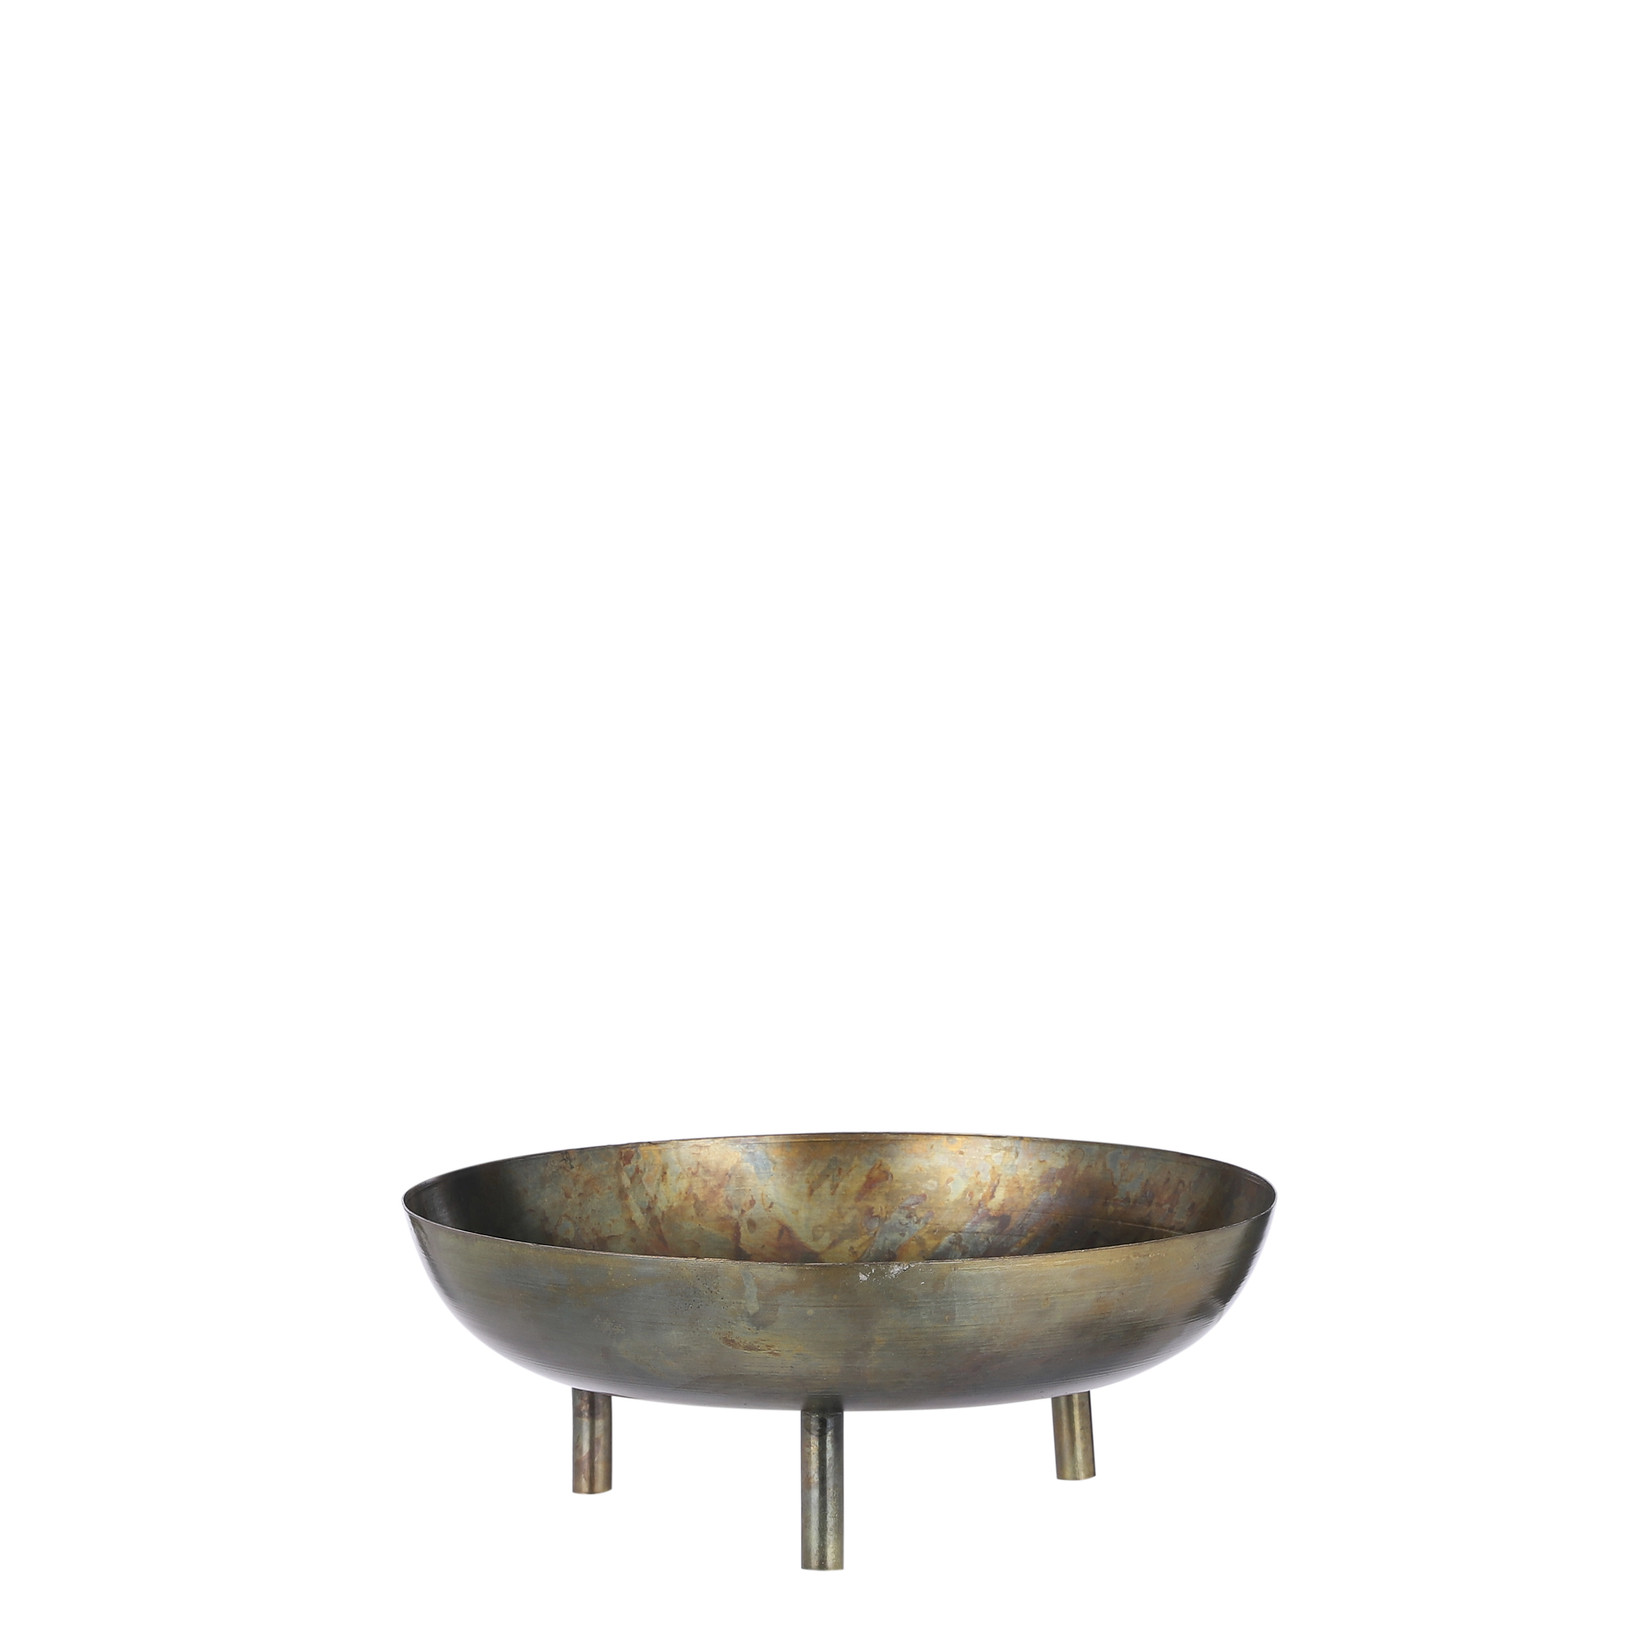 House of Seasons Azar bowl on foot gold antique